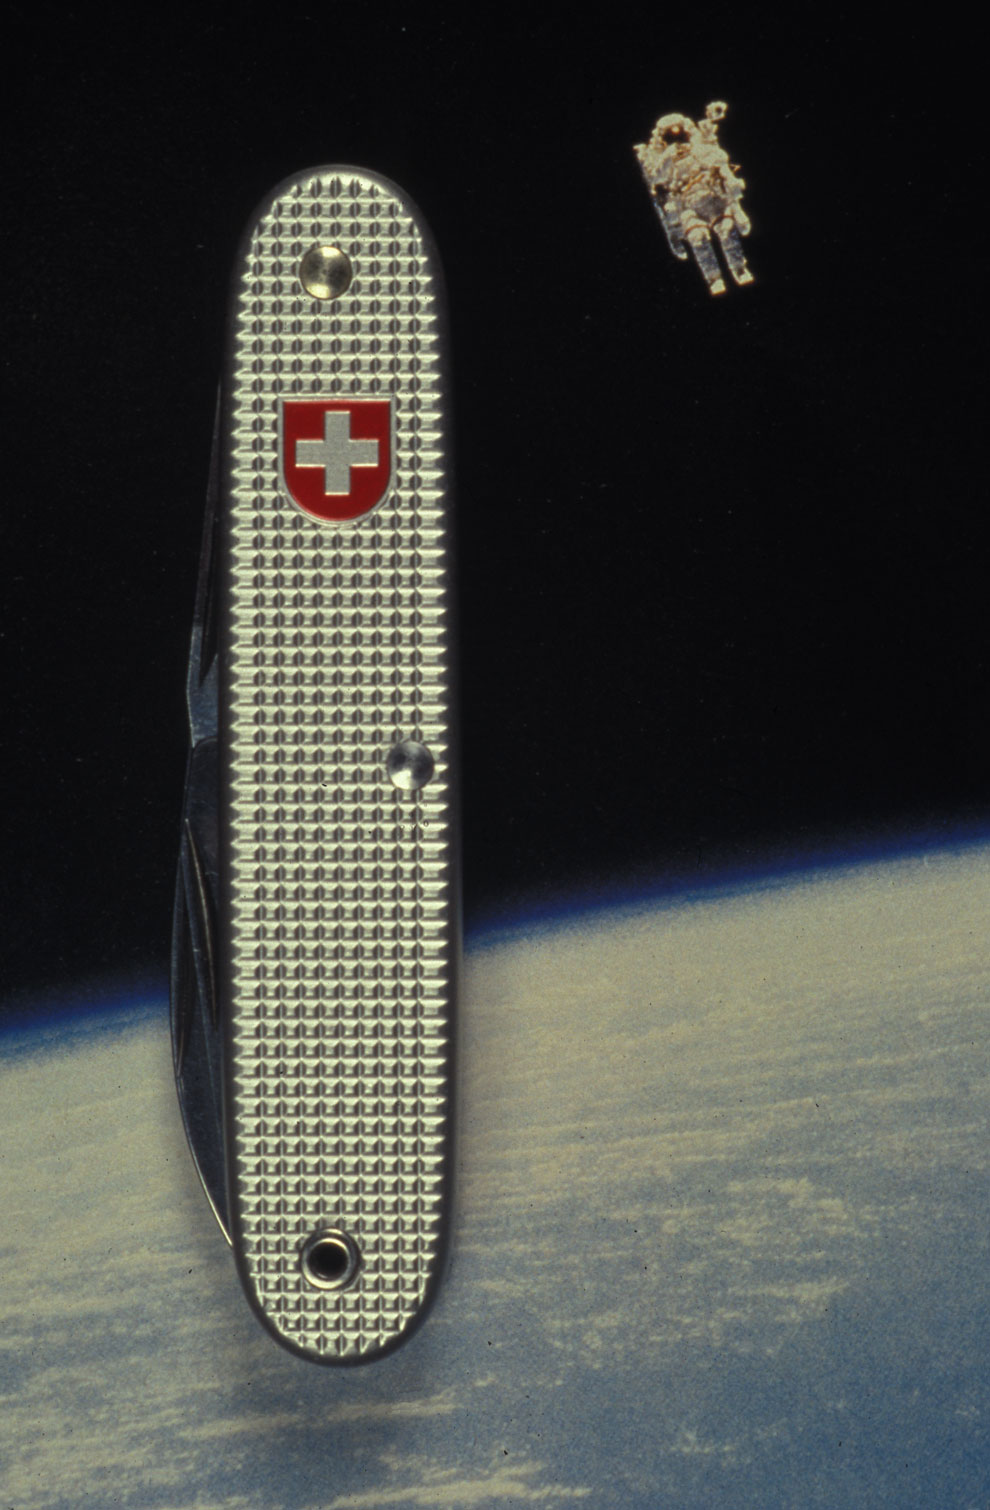 swiss army knife, soldier's version